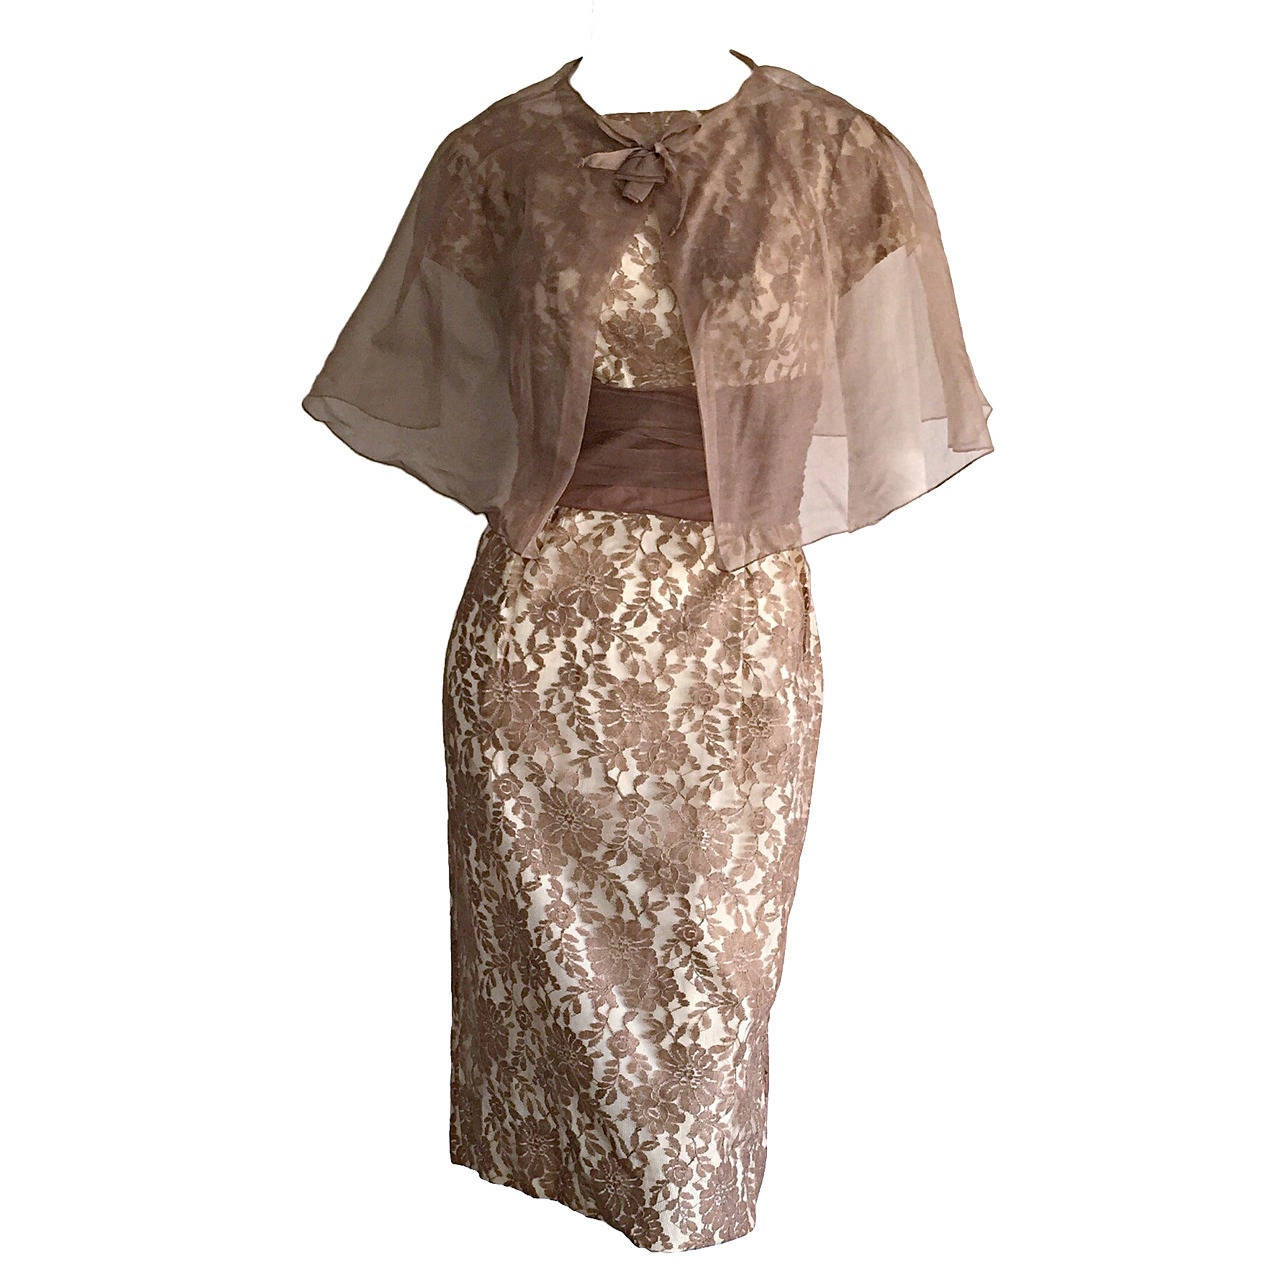 Incredible 1950s French Lace Bombshell Chantilly Lace Wiggle Dress + Cape